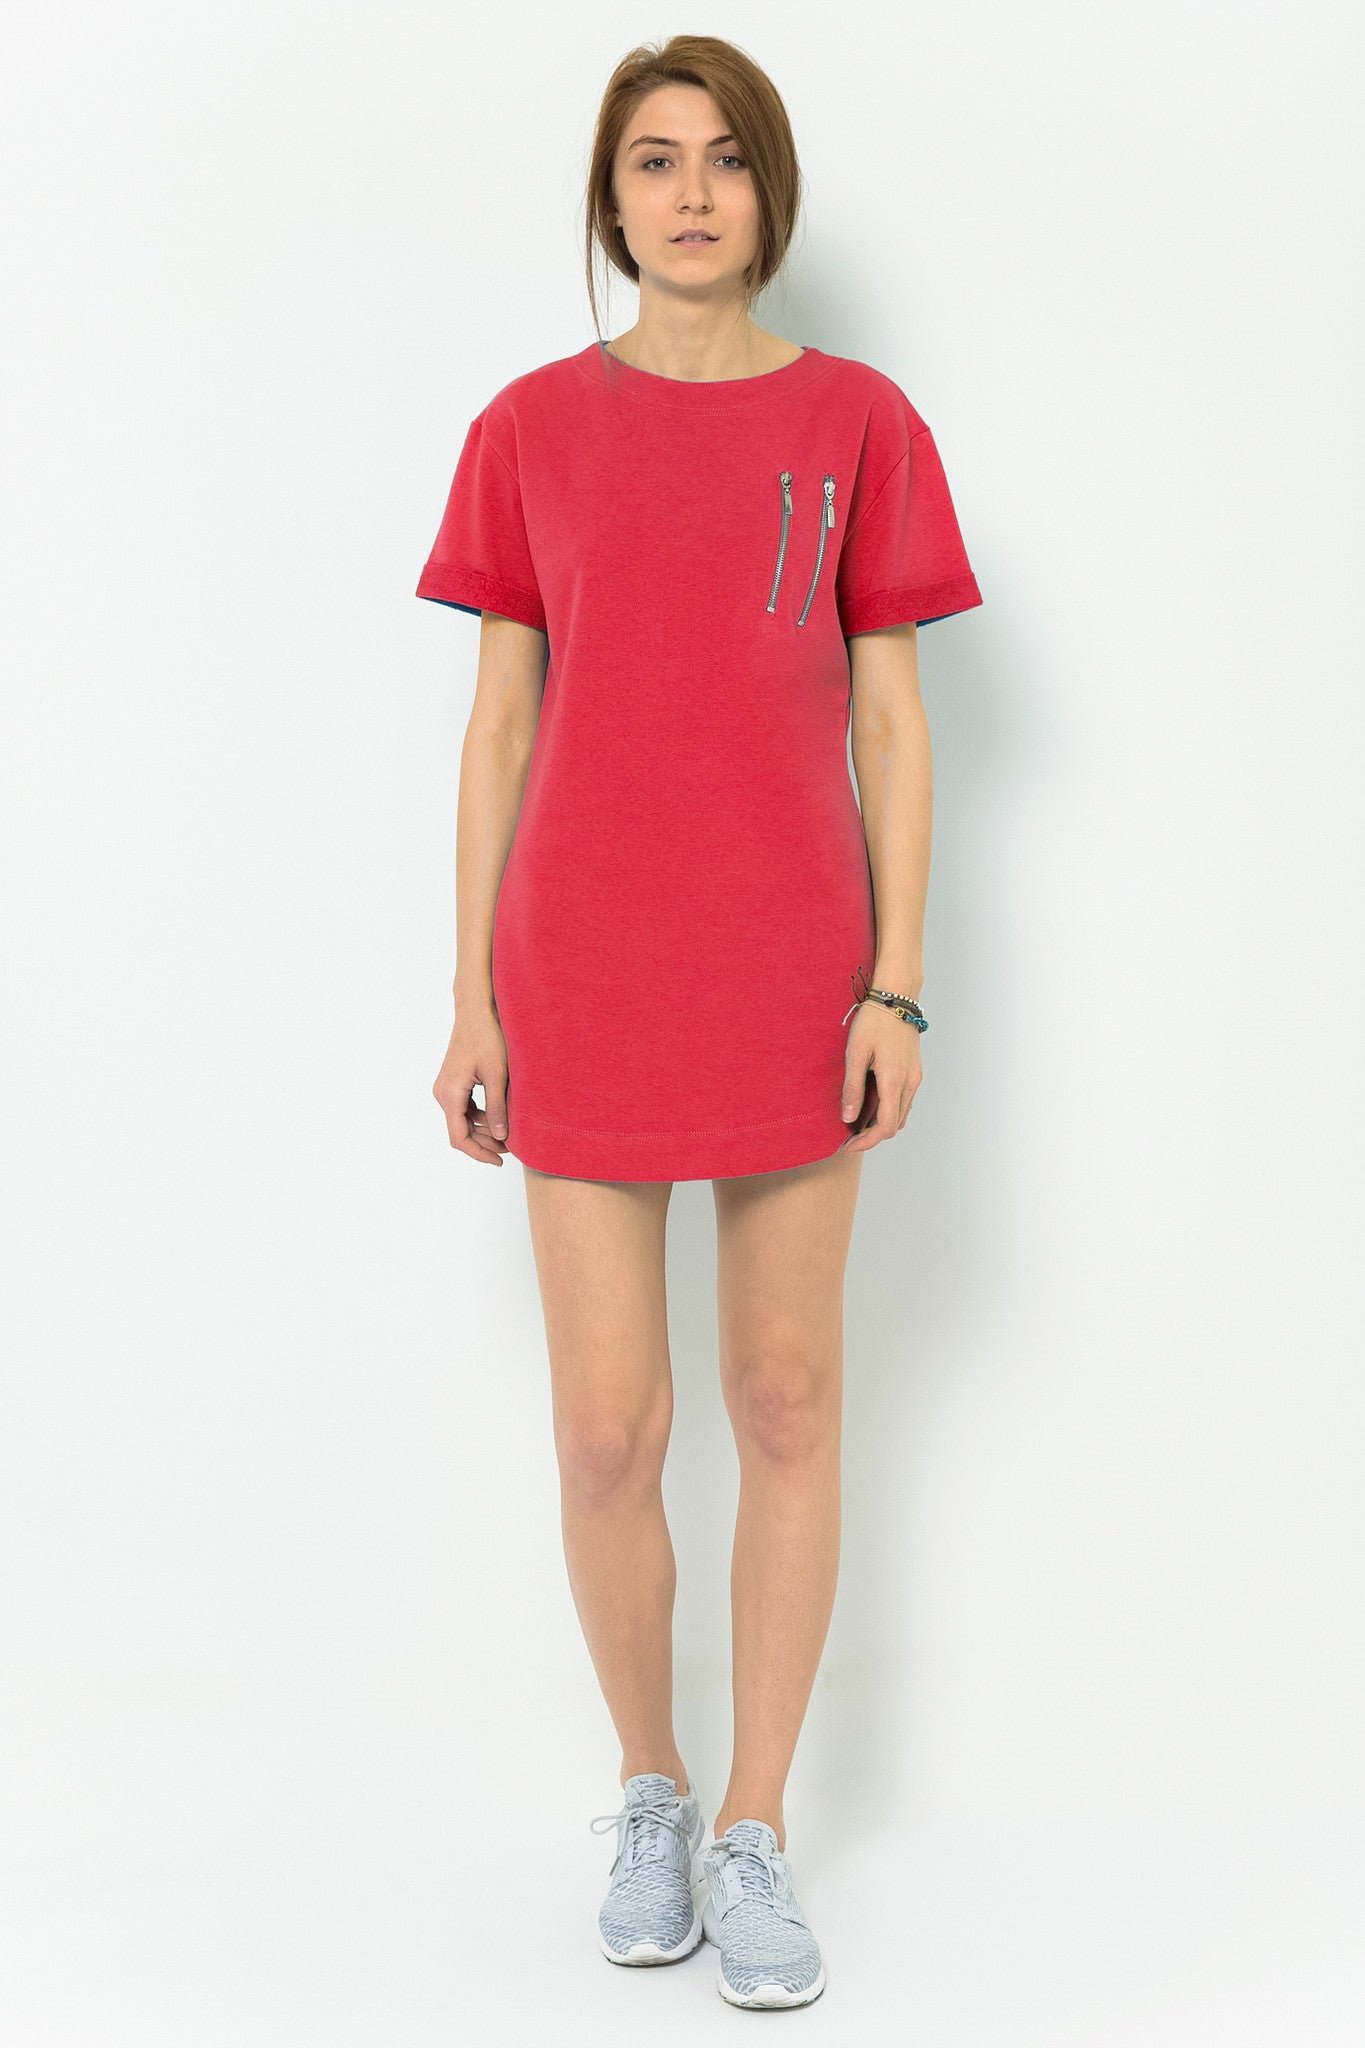 Hemingway + Coffee T-Shirt Dress - Sunrose